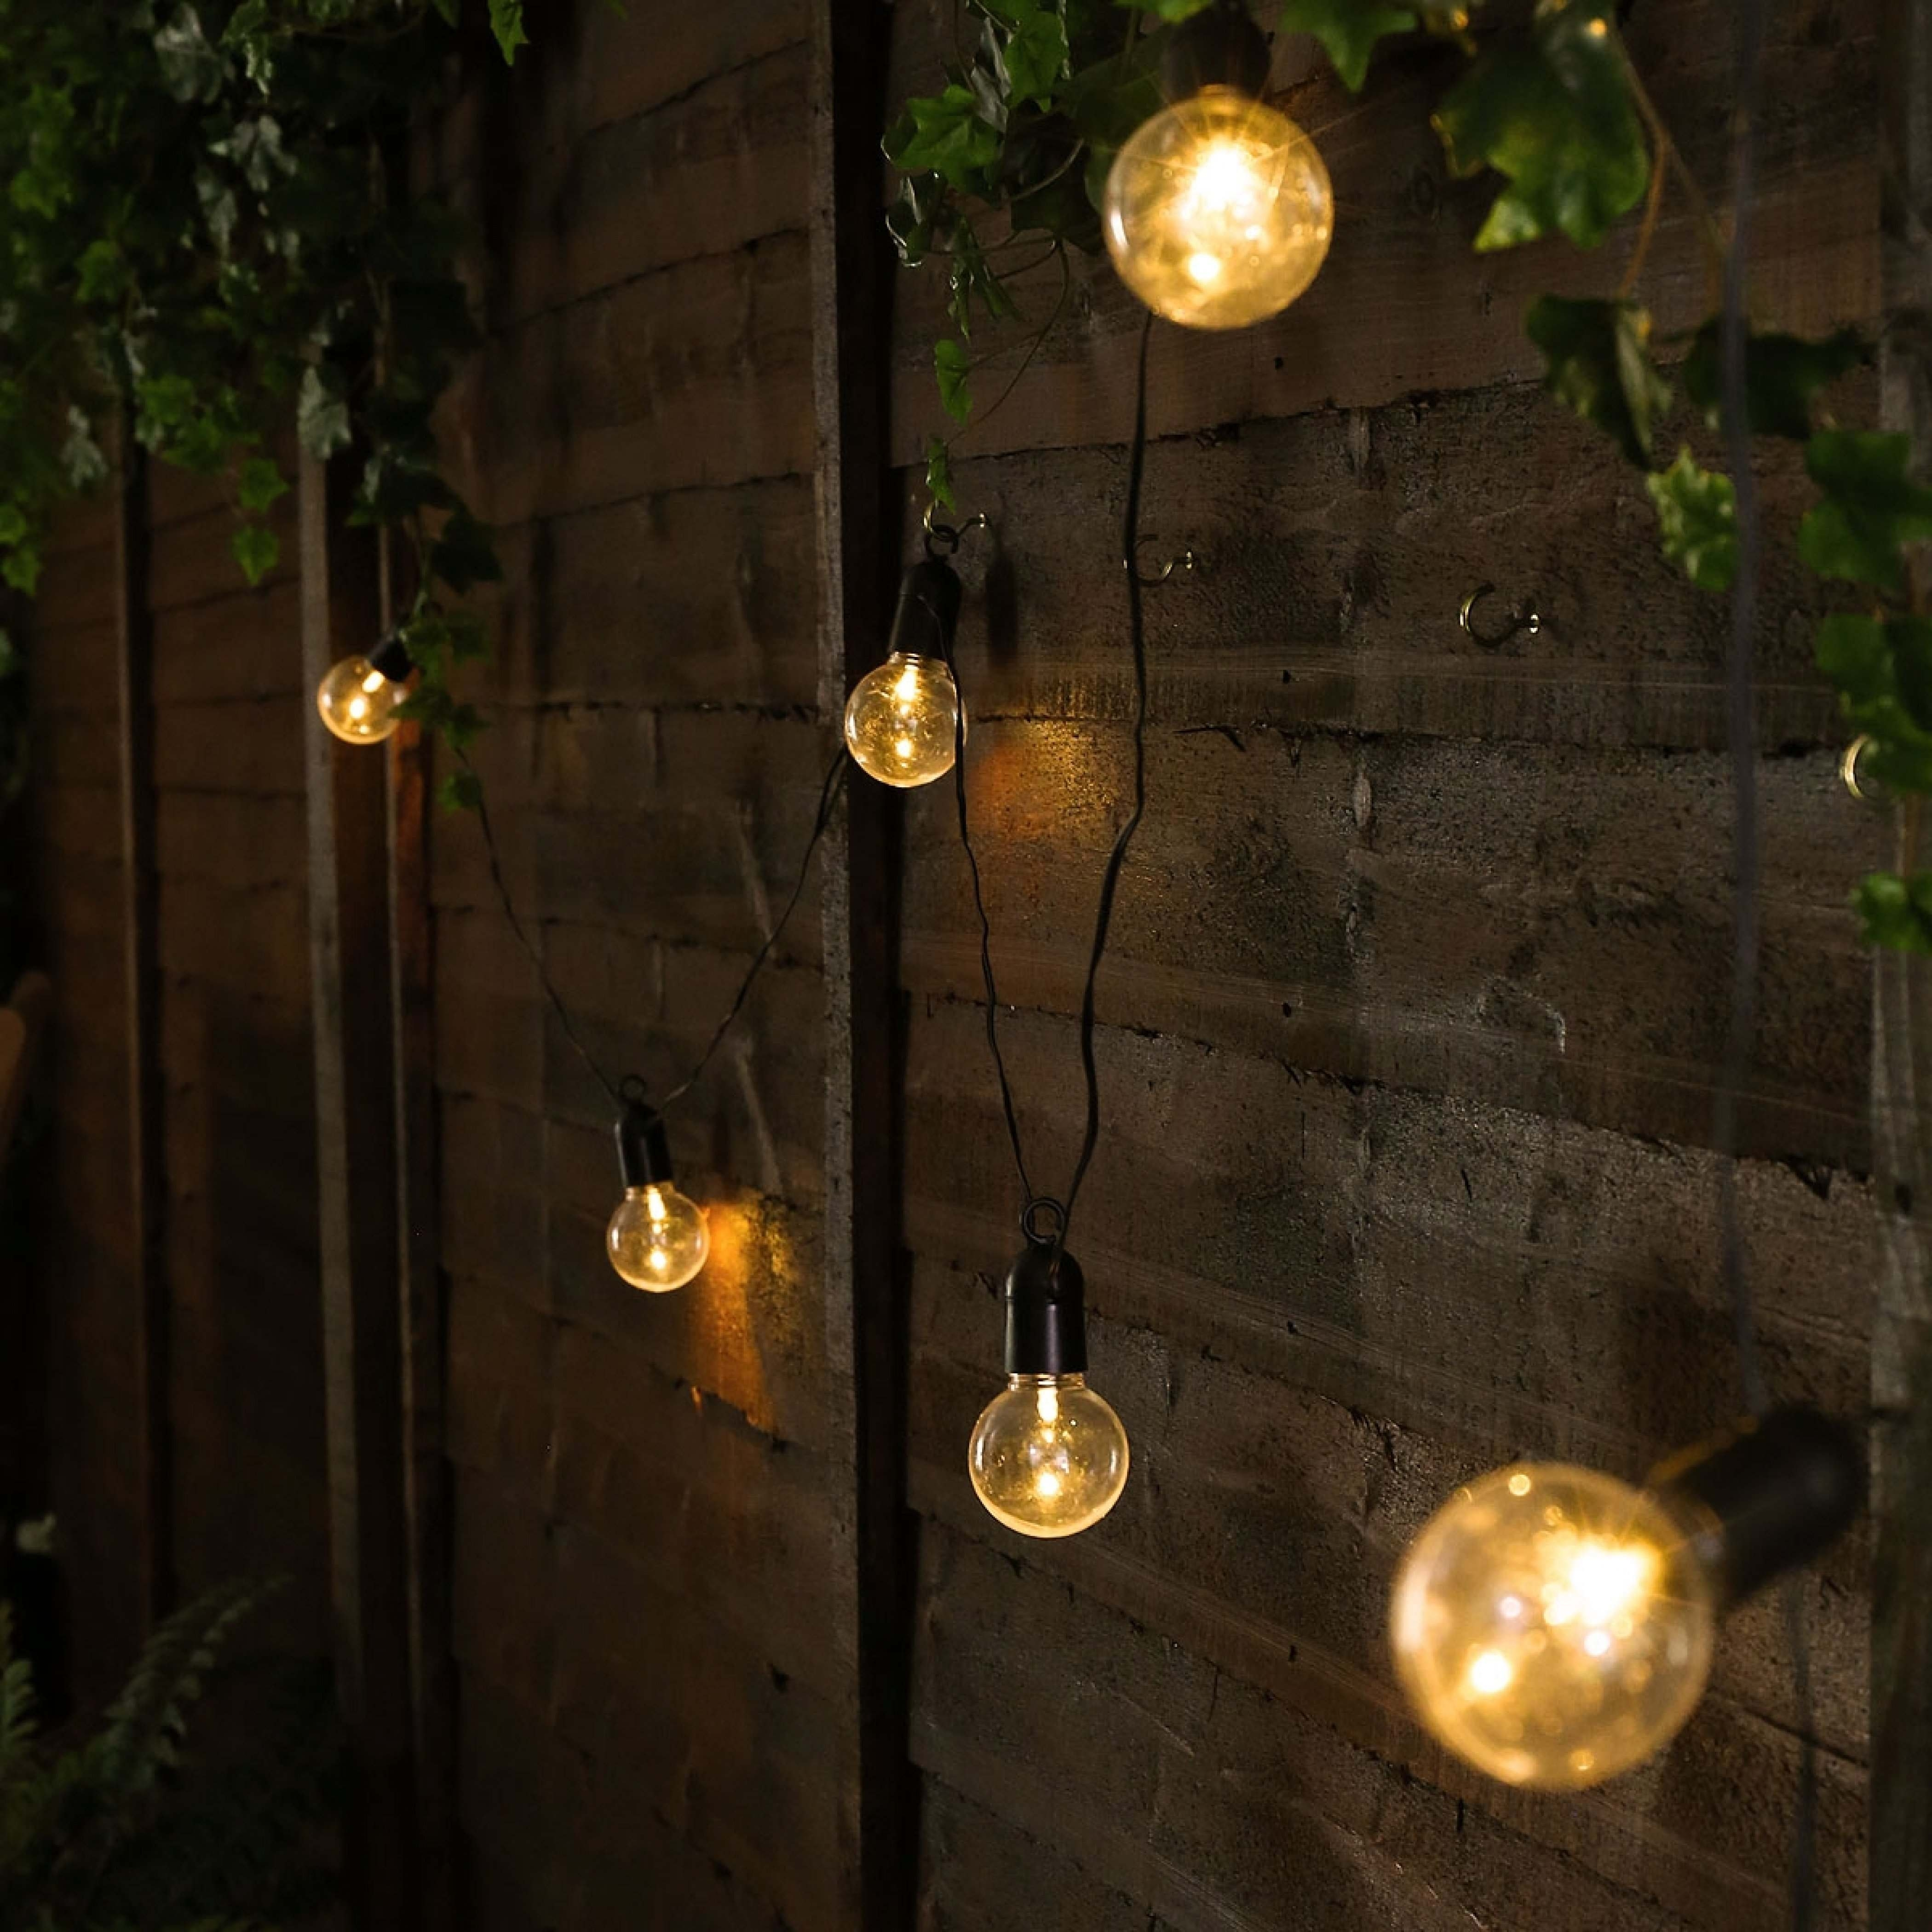 Outdoor Battery Festoon Lights, 10 Warm White Leds, Clear Bulbs Regarding Battery Operated Outdoor Lights (#13 of 15)